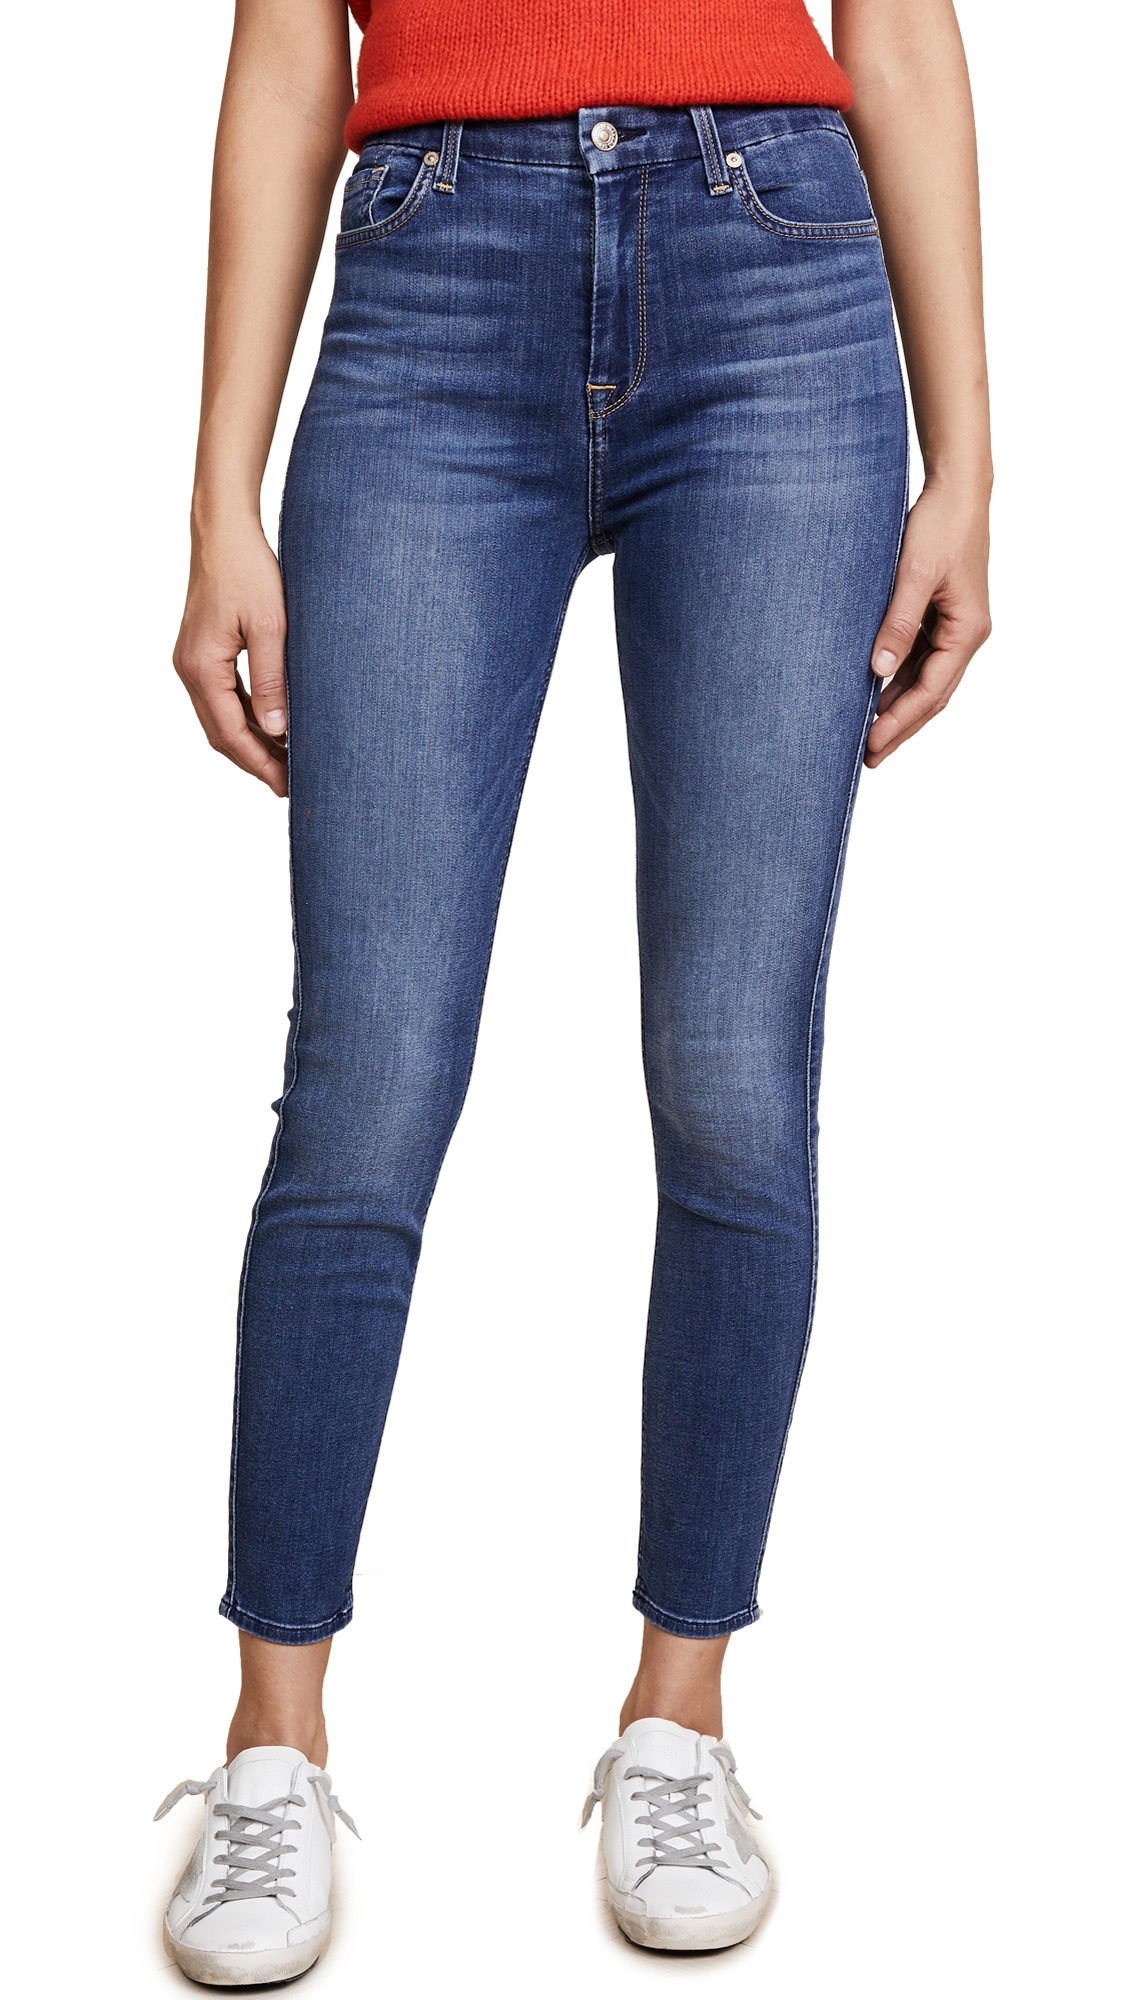 7 For All Mankind b(air) Aubrey Ankle Skinny Jeans